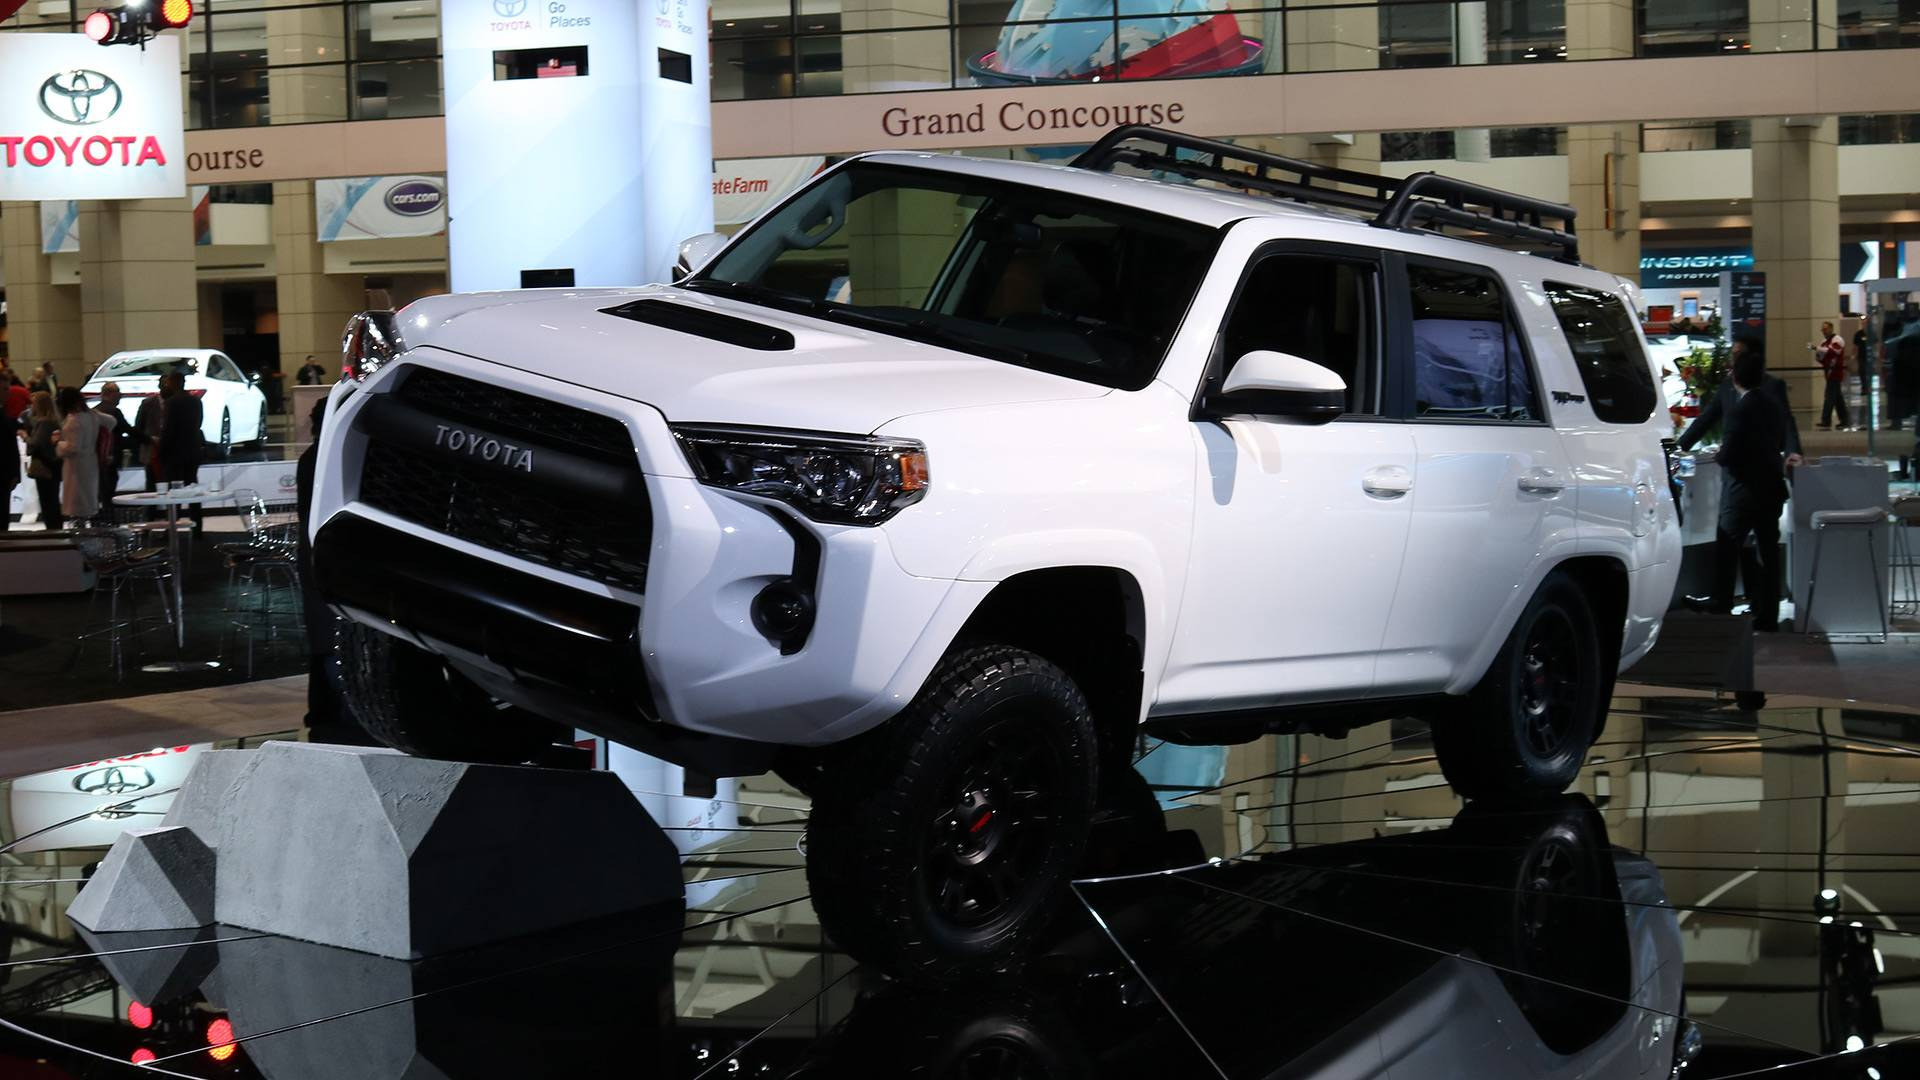 Toyota TRD Pro Lineup Get Fox Shocks To Work Even Better f Road